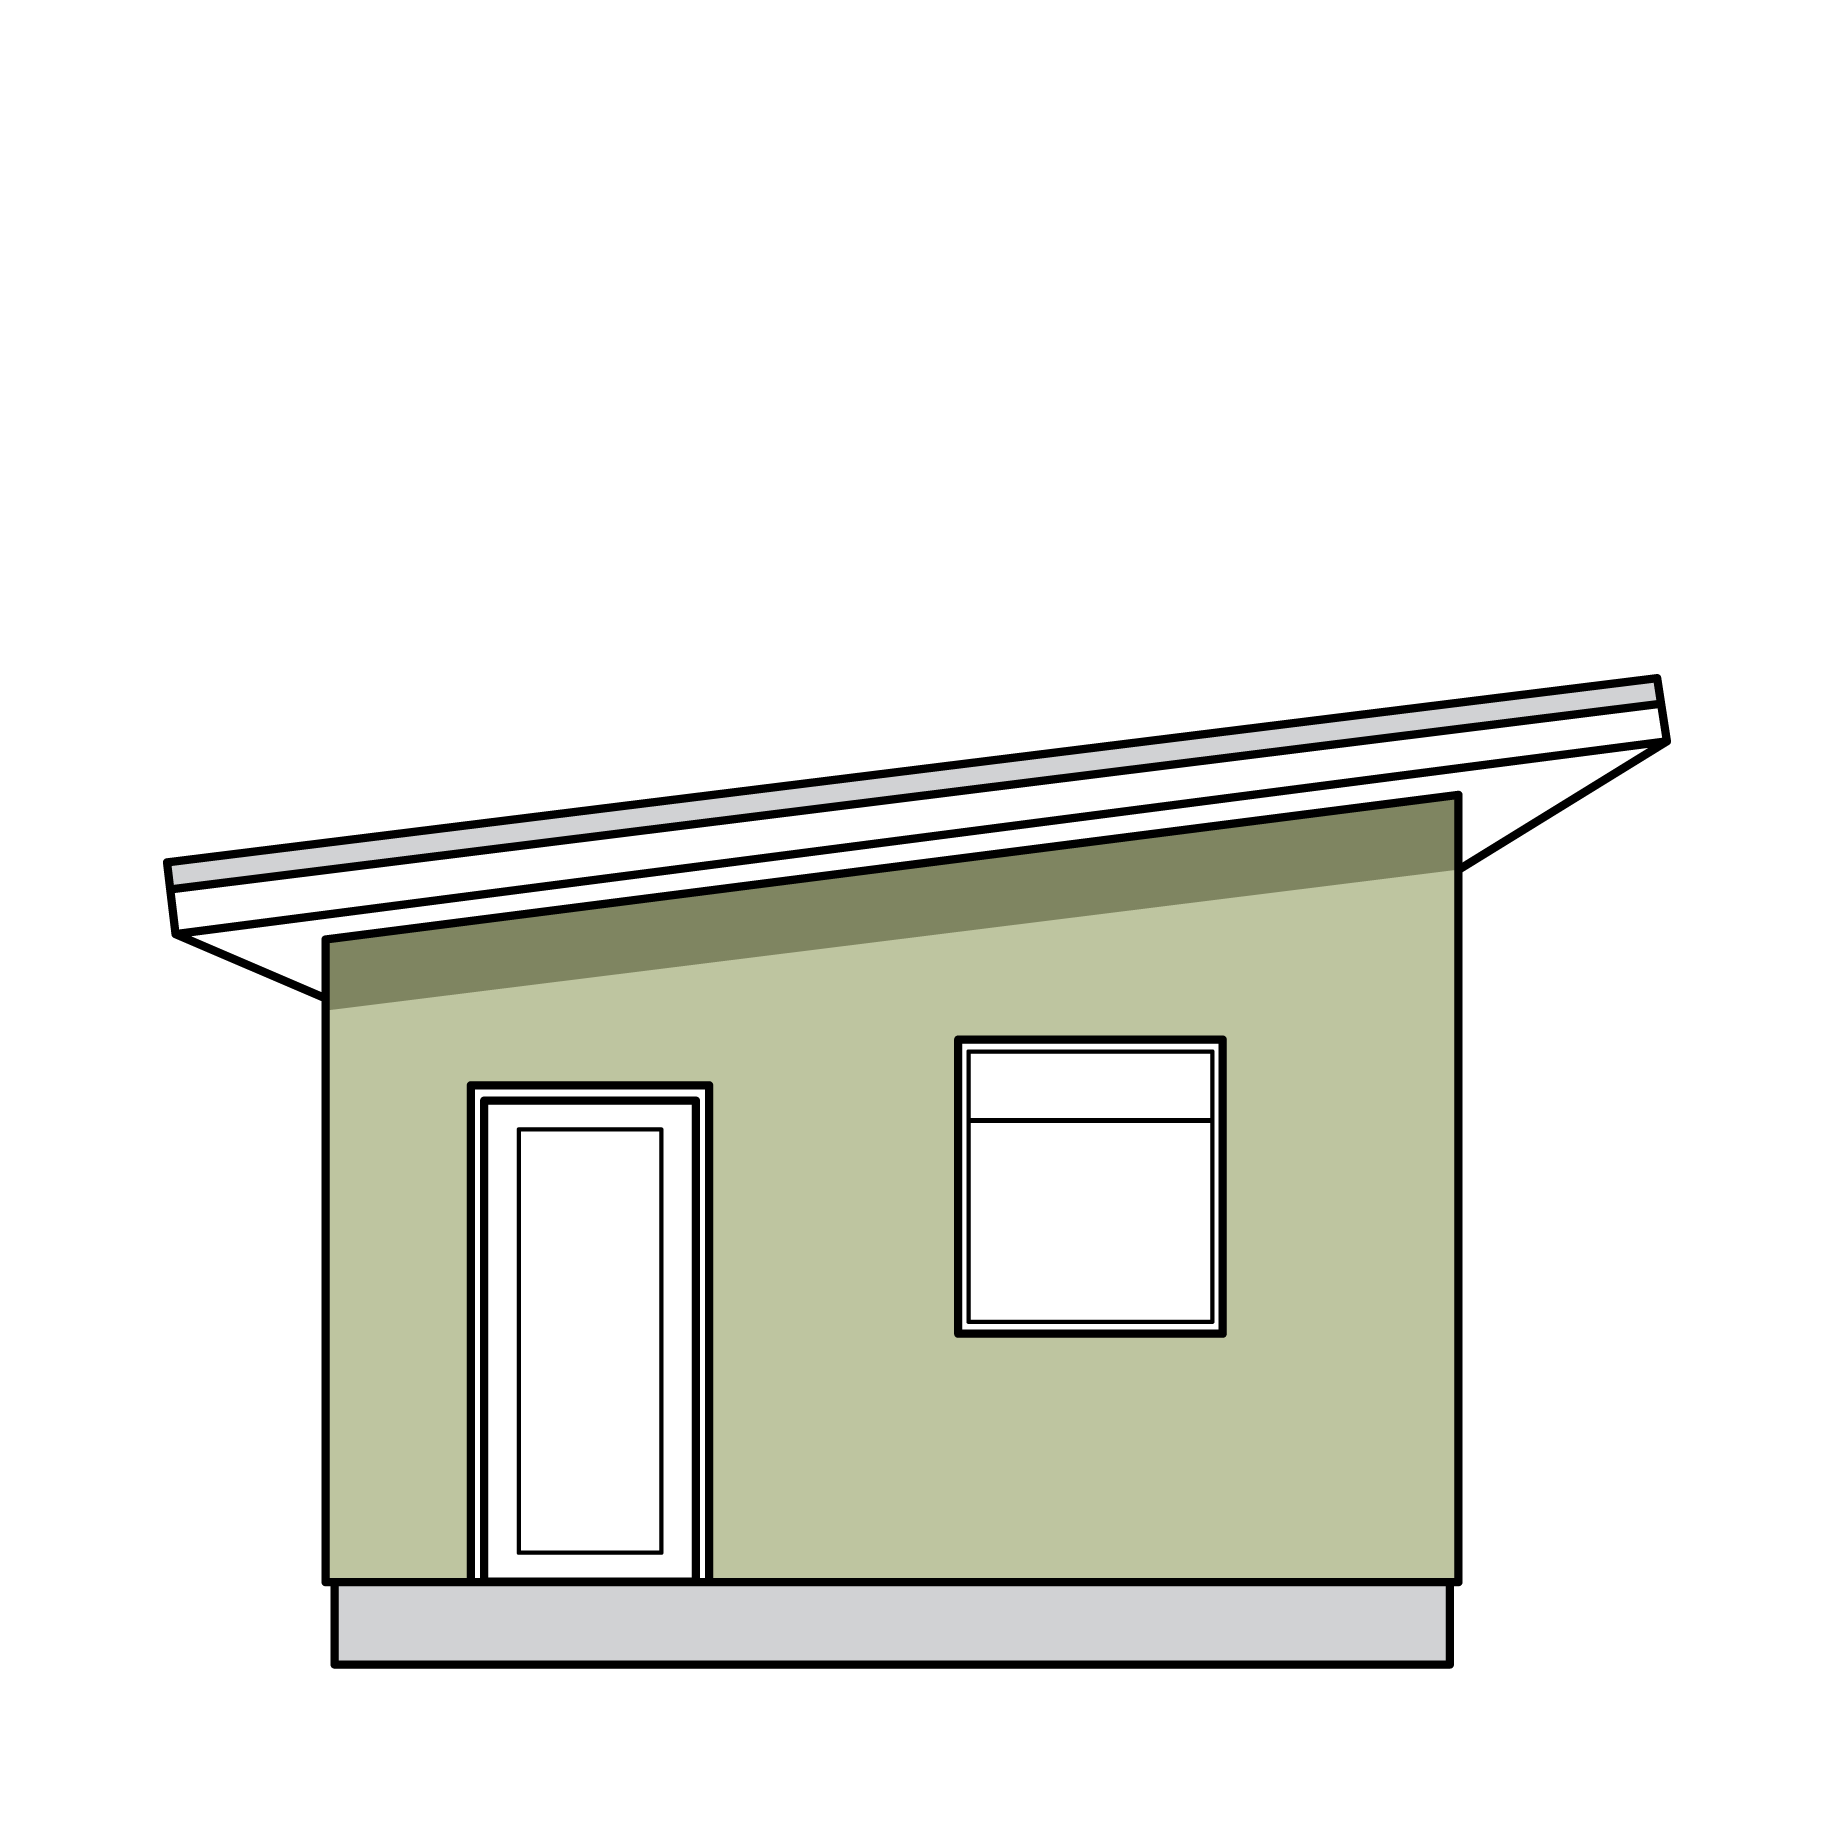 An illustration of Foothold's smallest model, the pika